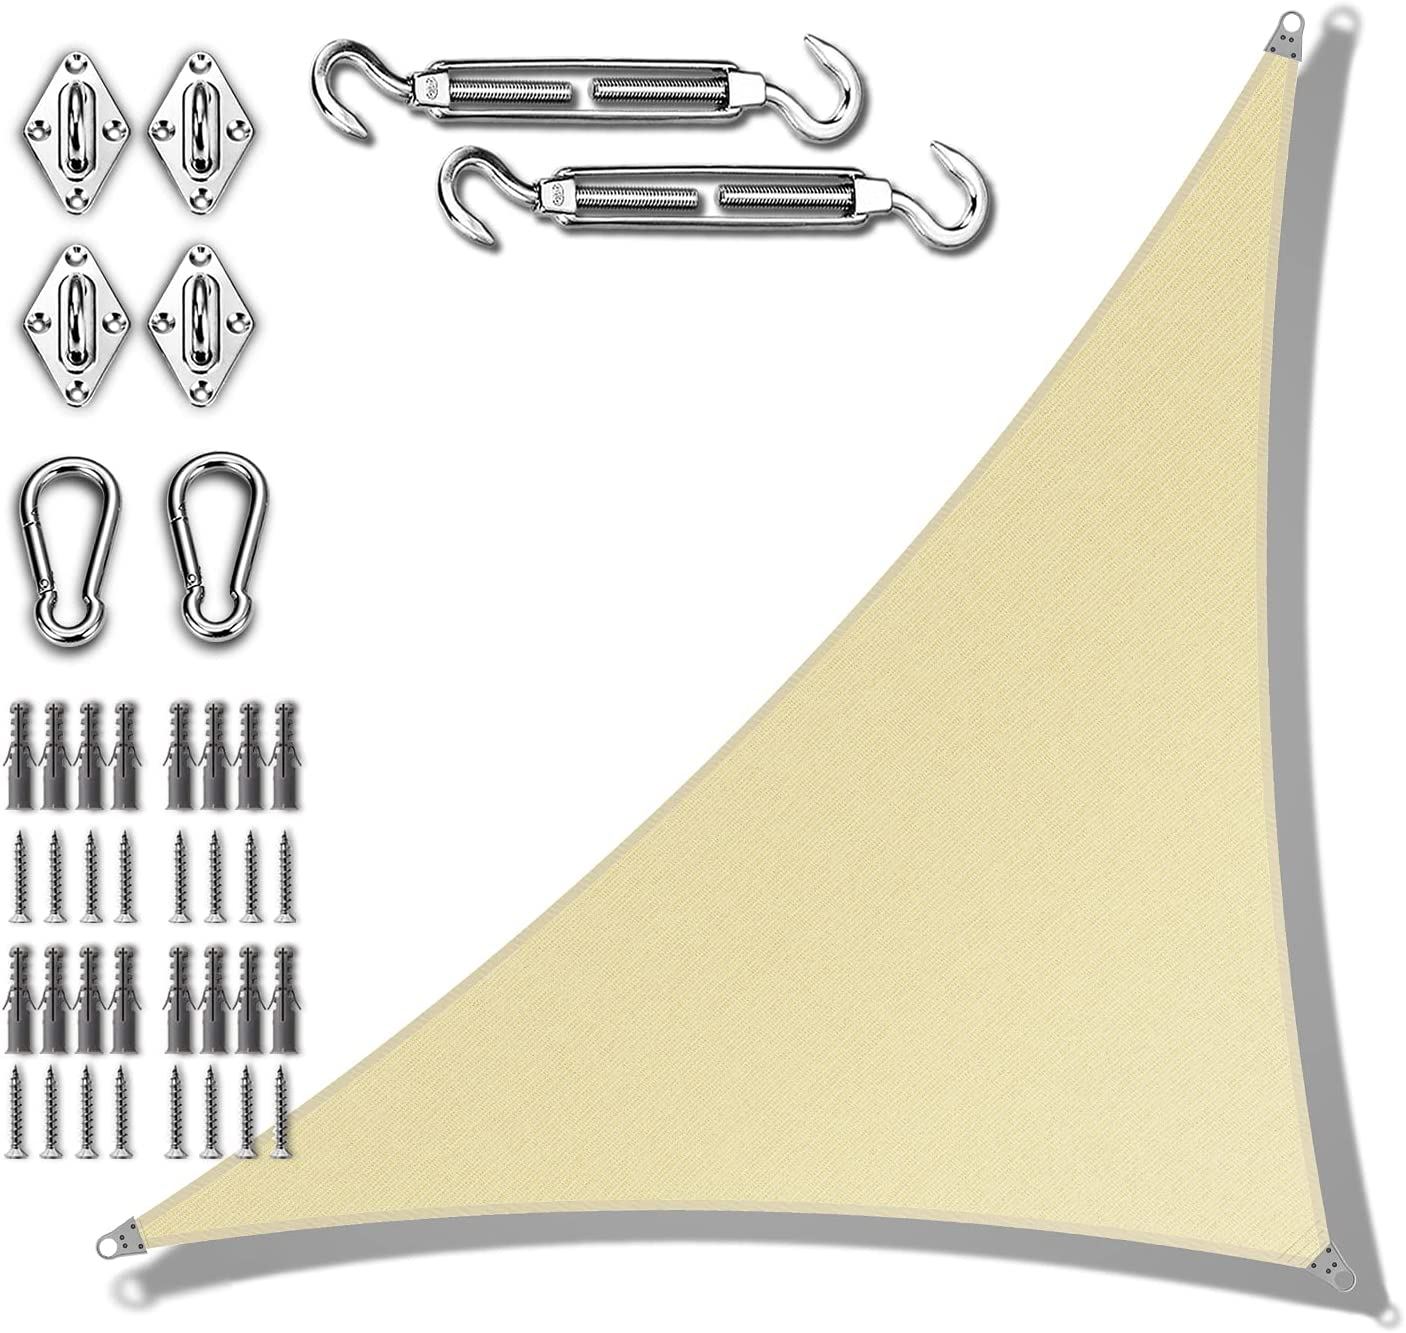 Amgo 12' x 17' Beige Right with Popular shop is the lowest Max 70% OFF price challenge Tr Sun Shade Triangle Sail